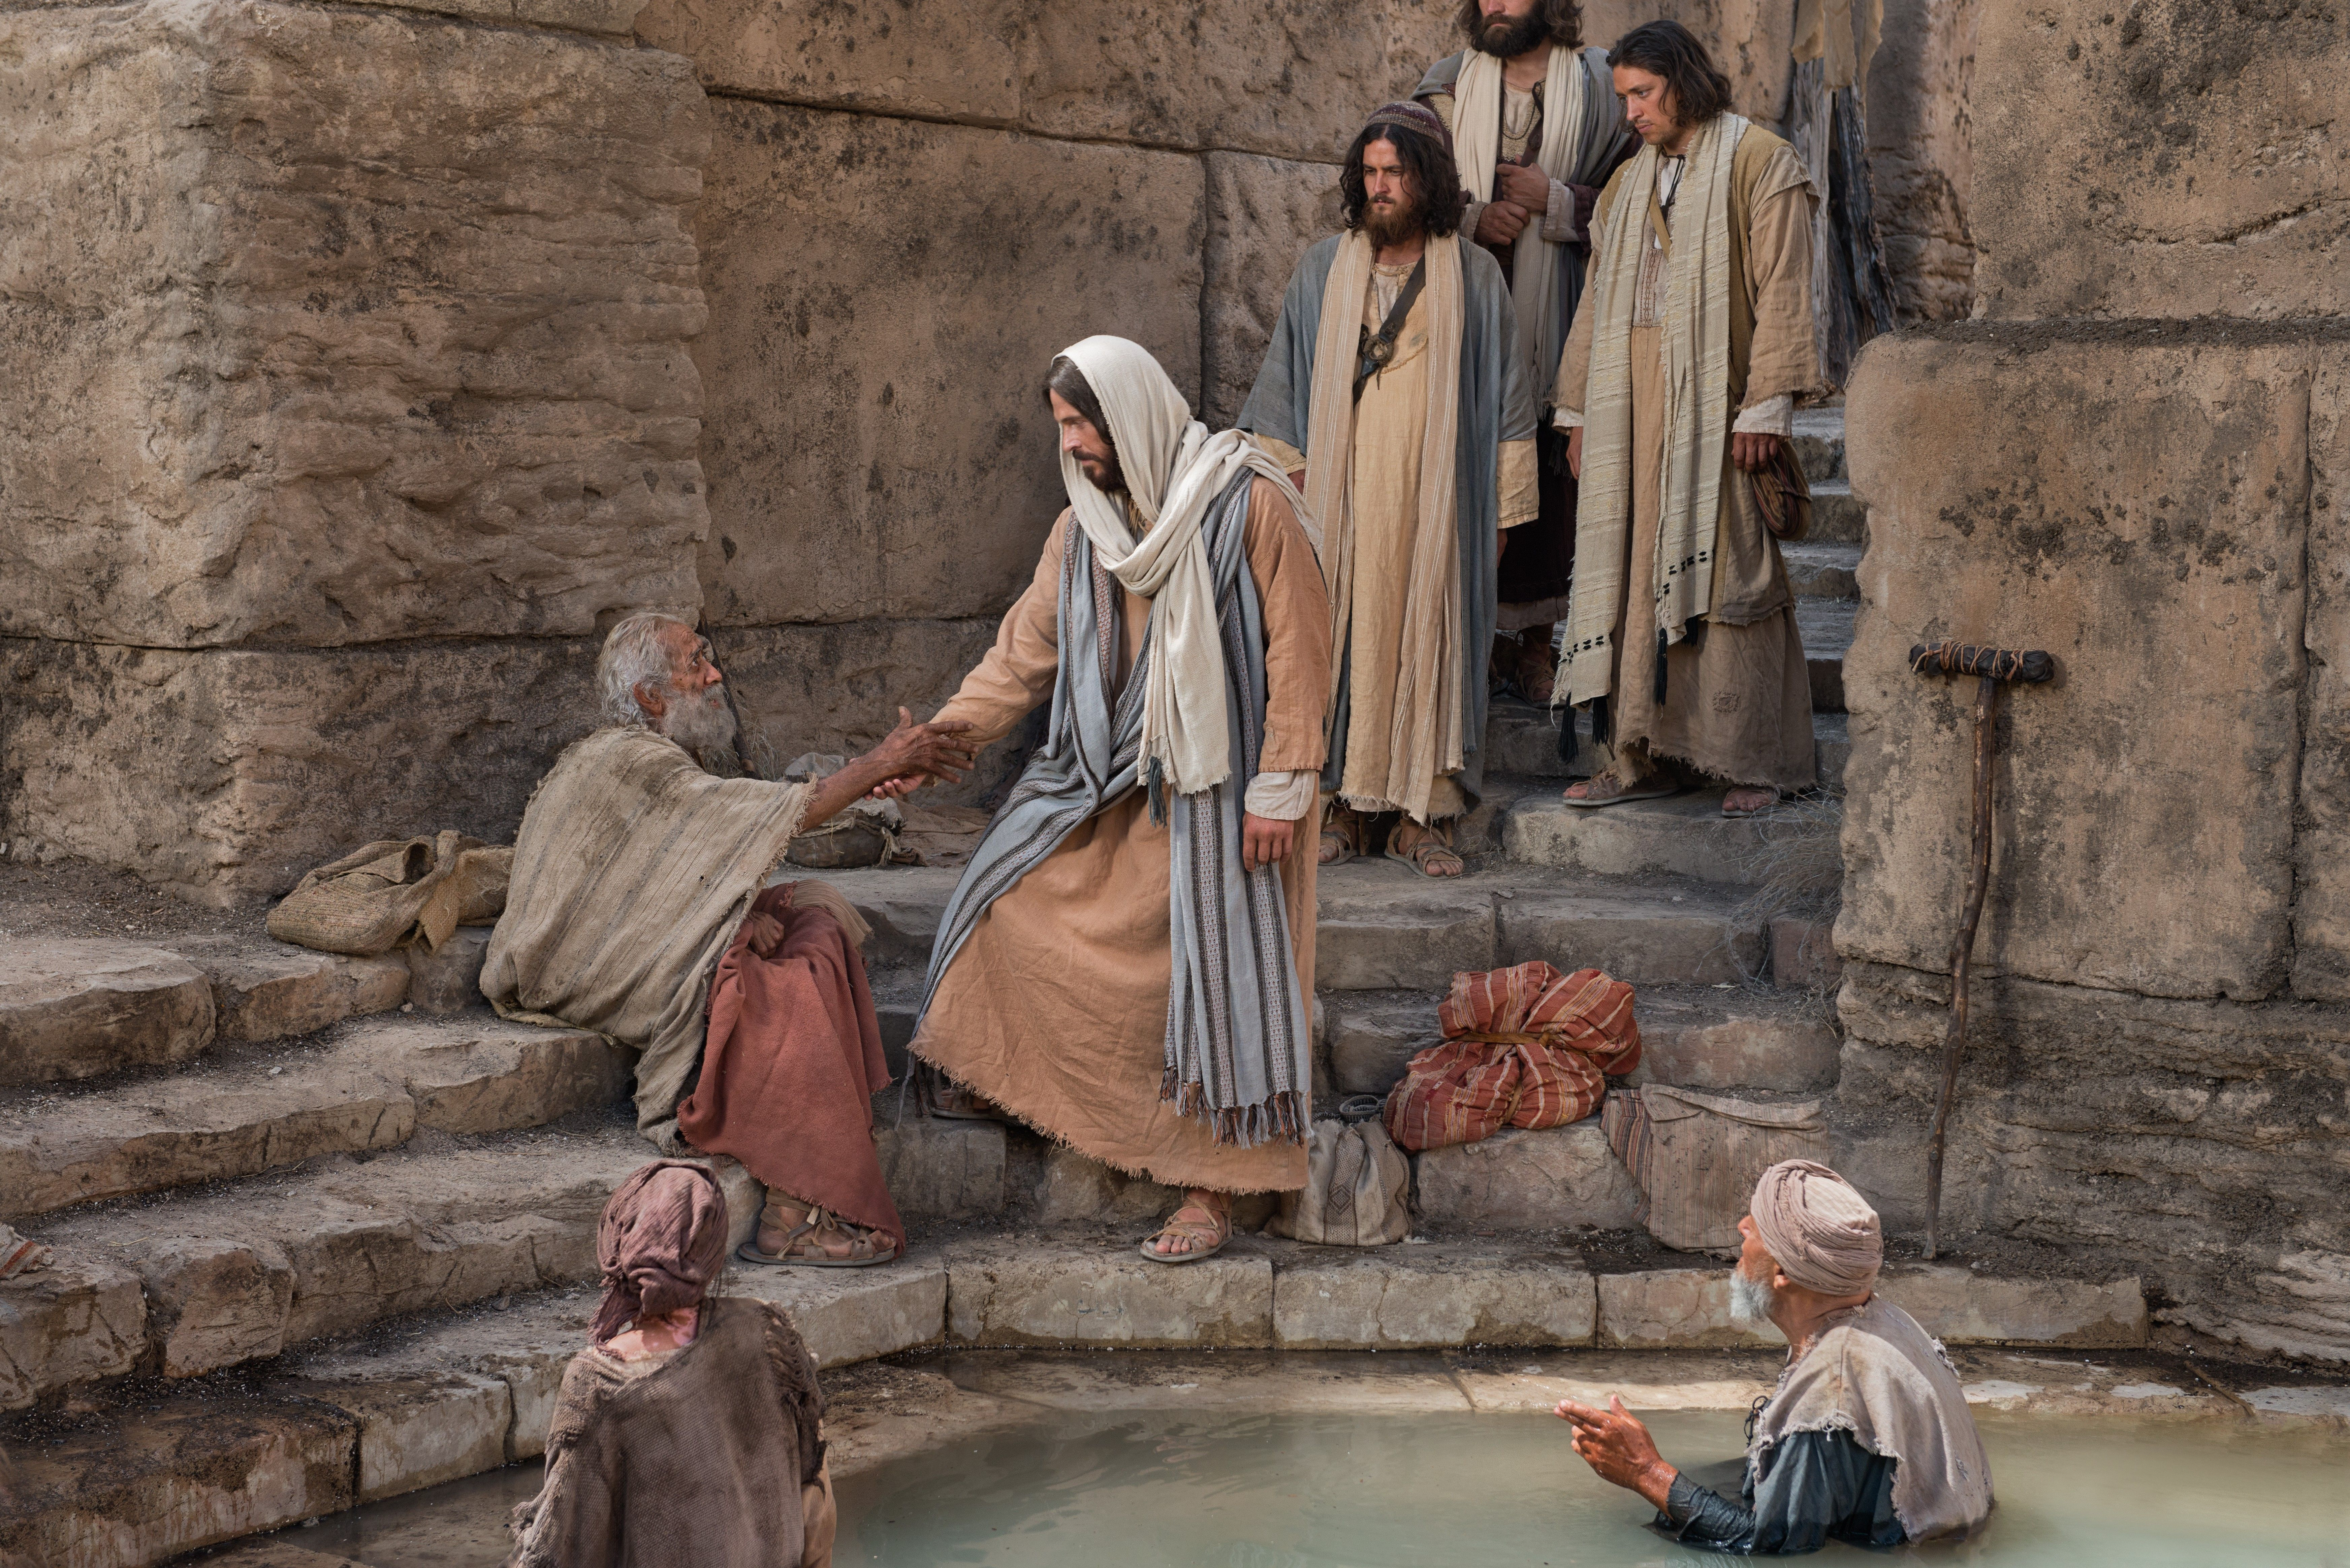 Christ at the pool of Bethesda, reaching toward the man waiting there.